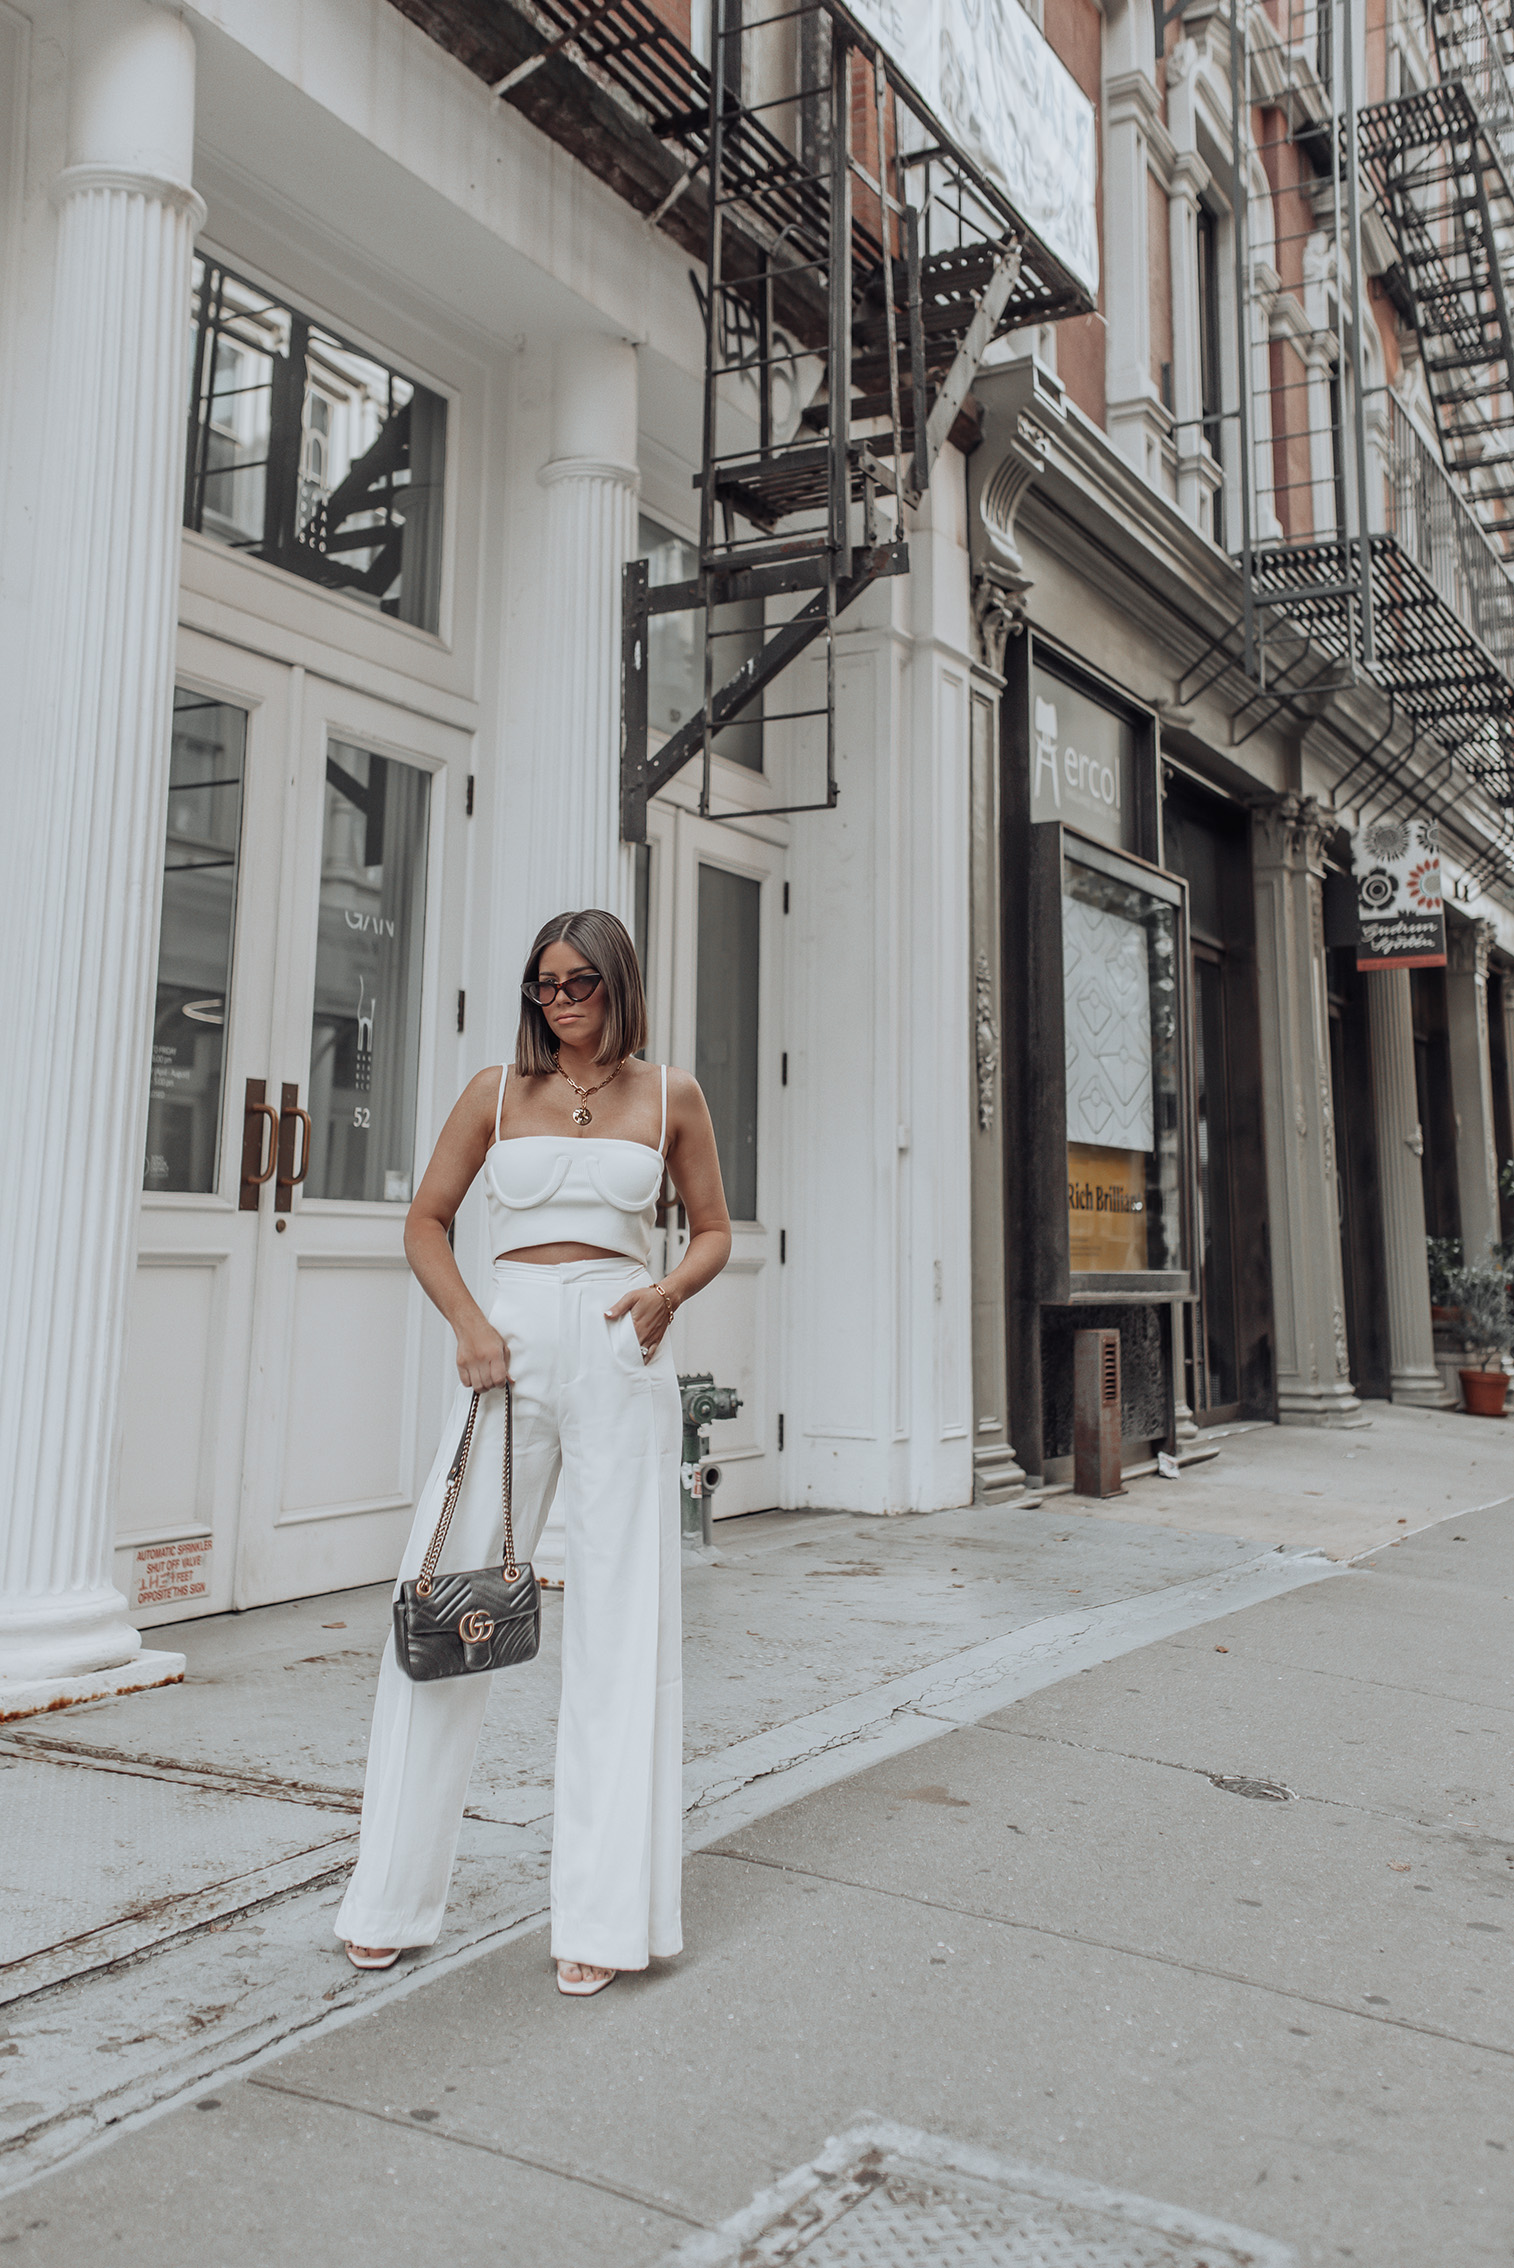 Orseund iris tube tank | White Pants | Gucci Bag Seriously obsessed with this ribbed knit tube tank by Orseund Iris! It's timeless and such a great staple you can style and wear over and over again. Also I love how well it pairs with white pants for a chic elevated look. #streetstyle #NYFW #allwhiteoutfit